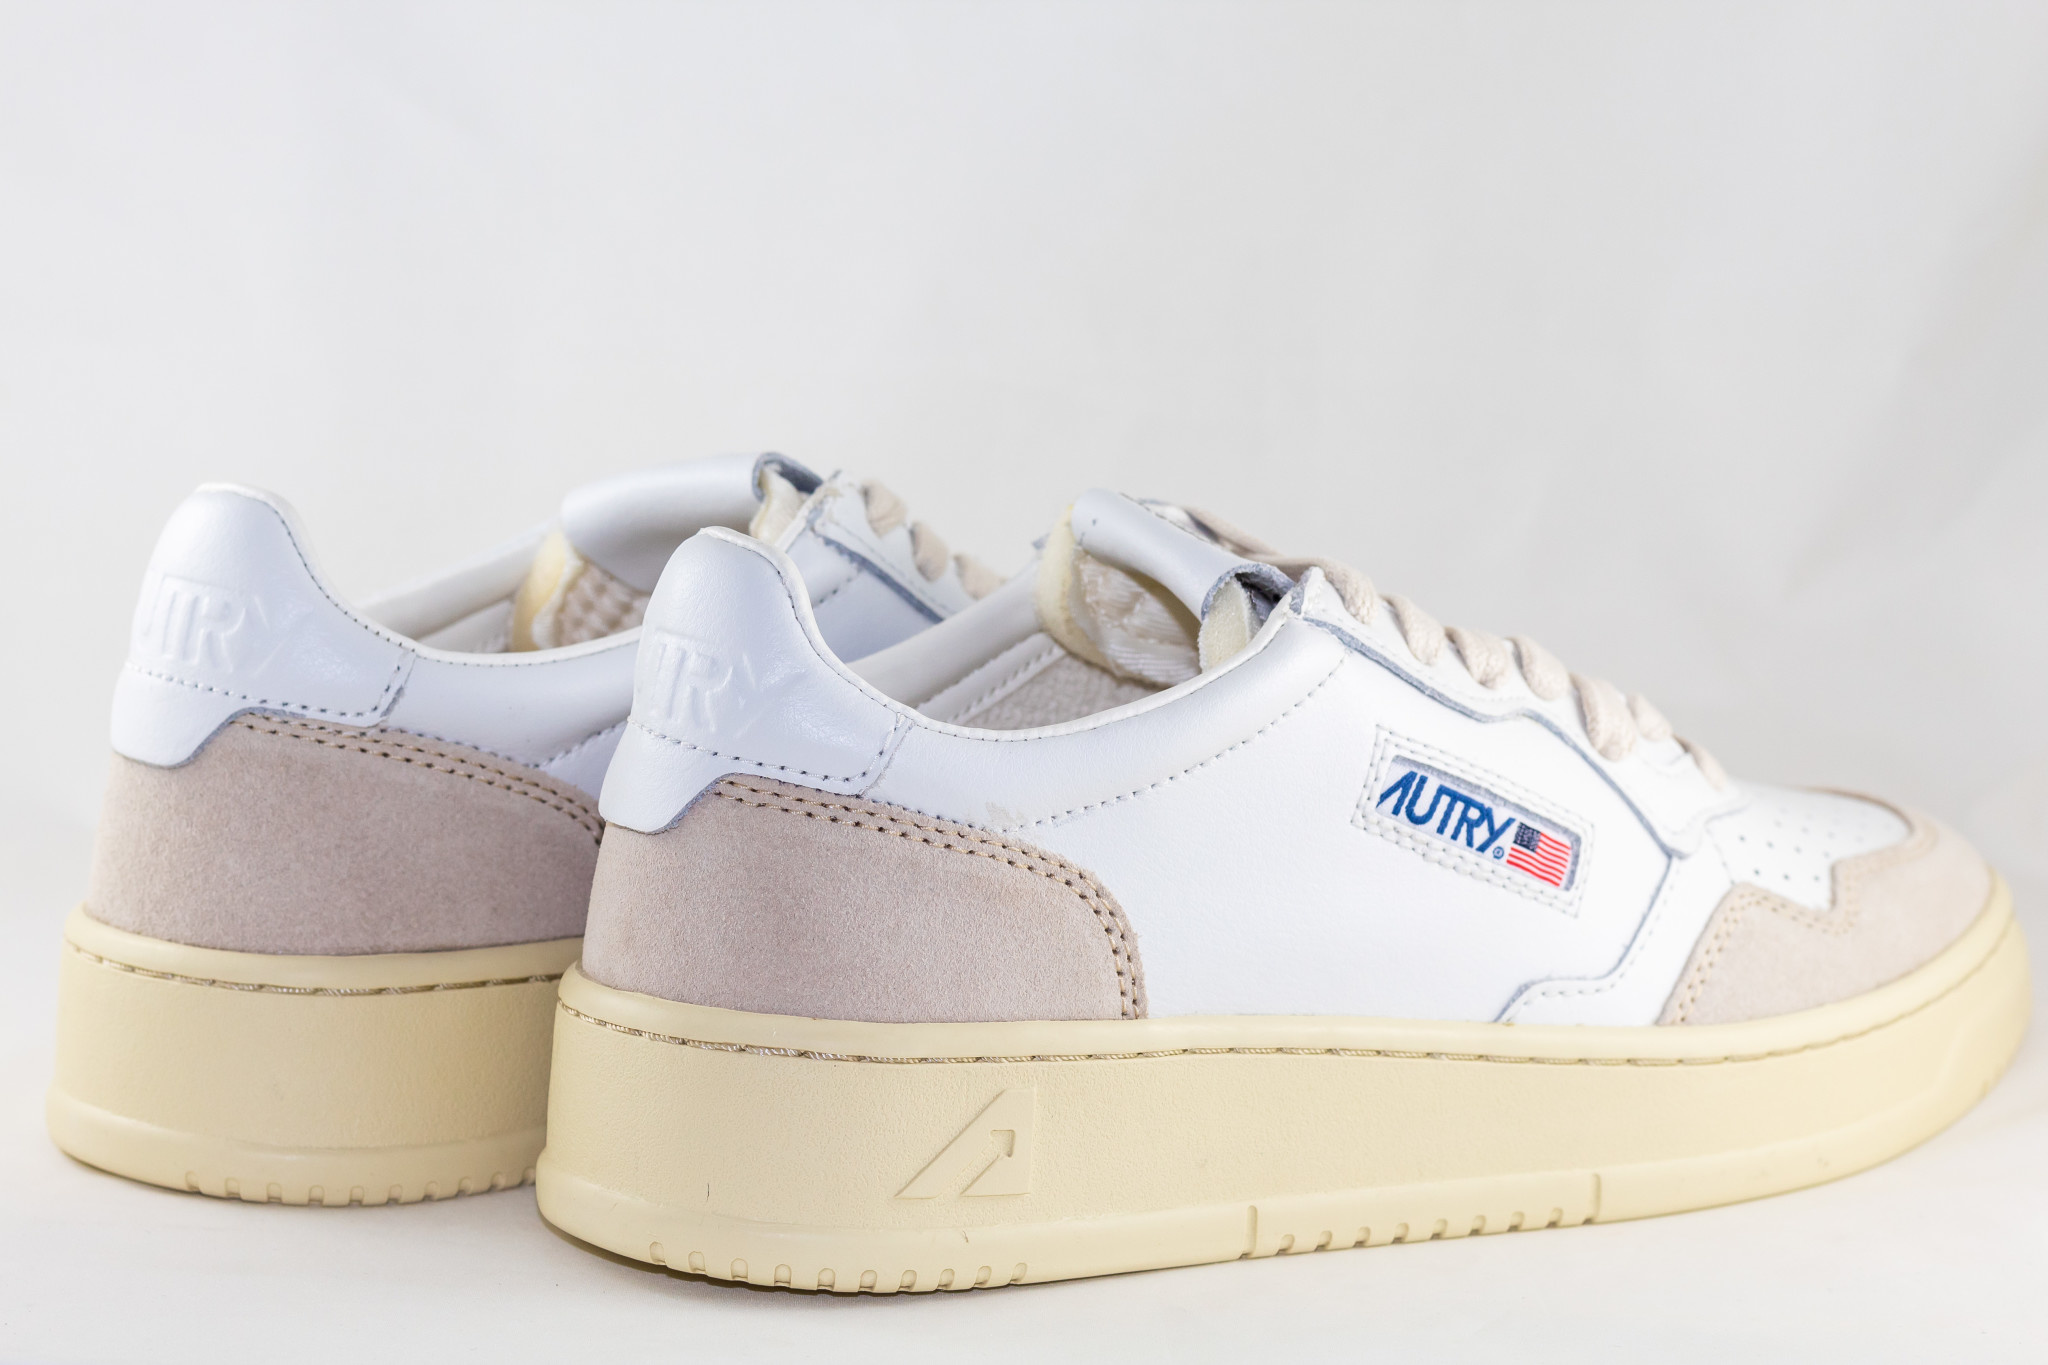 AUTRY LOW WOMAN LEATHER/ SUEDE White/ White